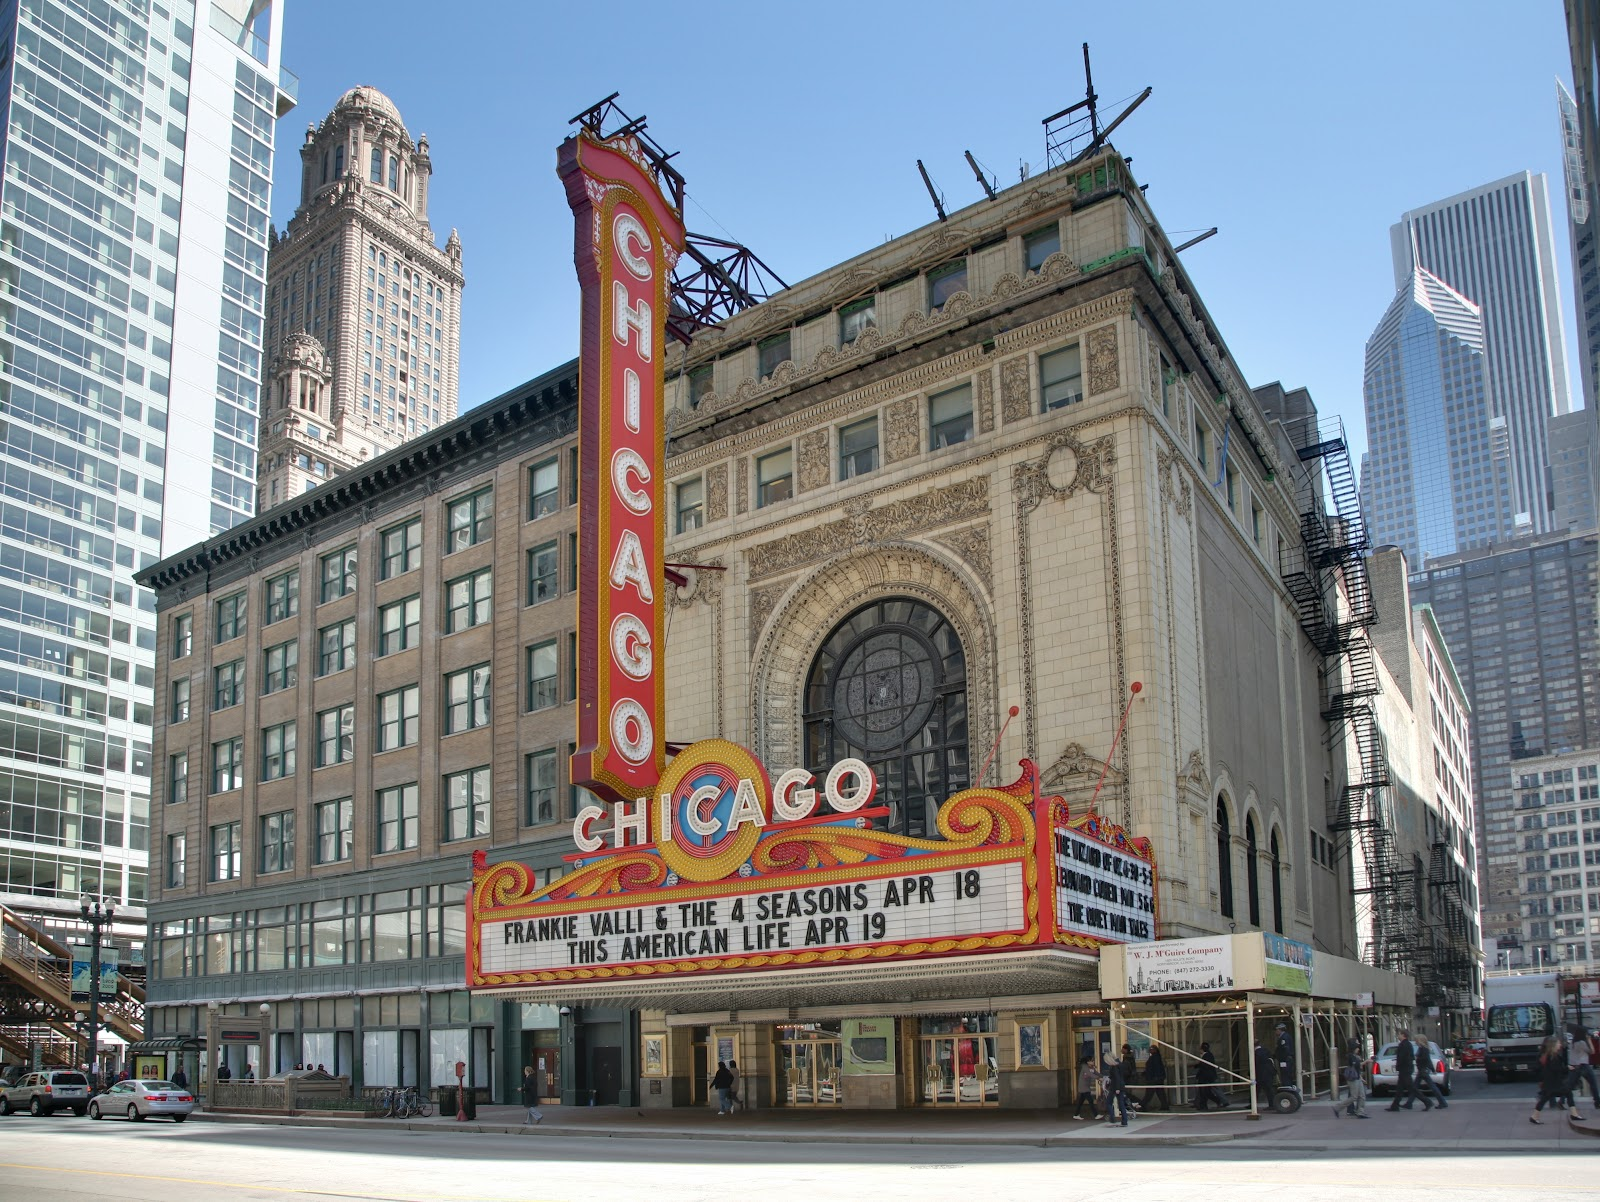 https://upload.wikimedia.org/wikipedia/commons/2/26/Chicago_Theatre_blend.jpg